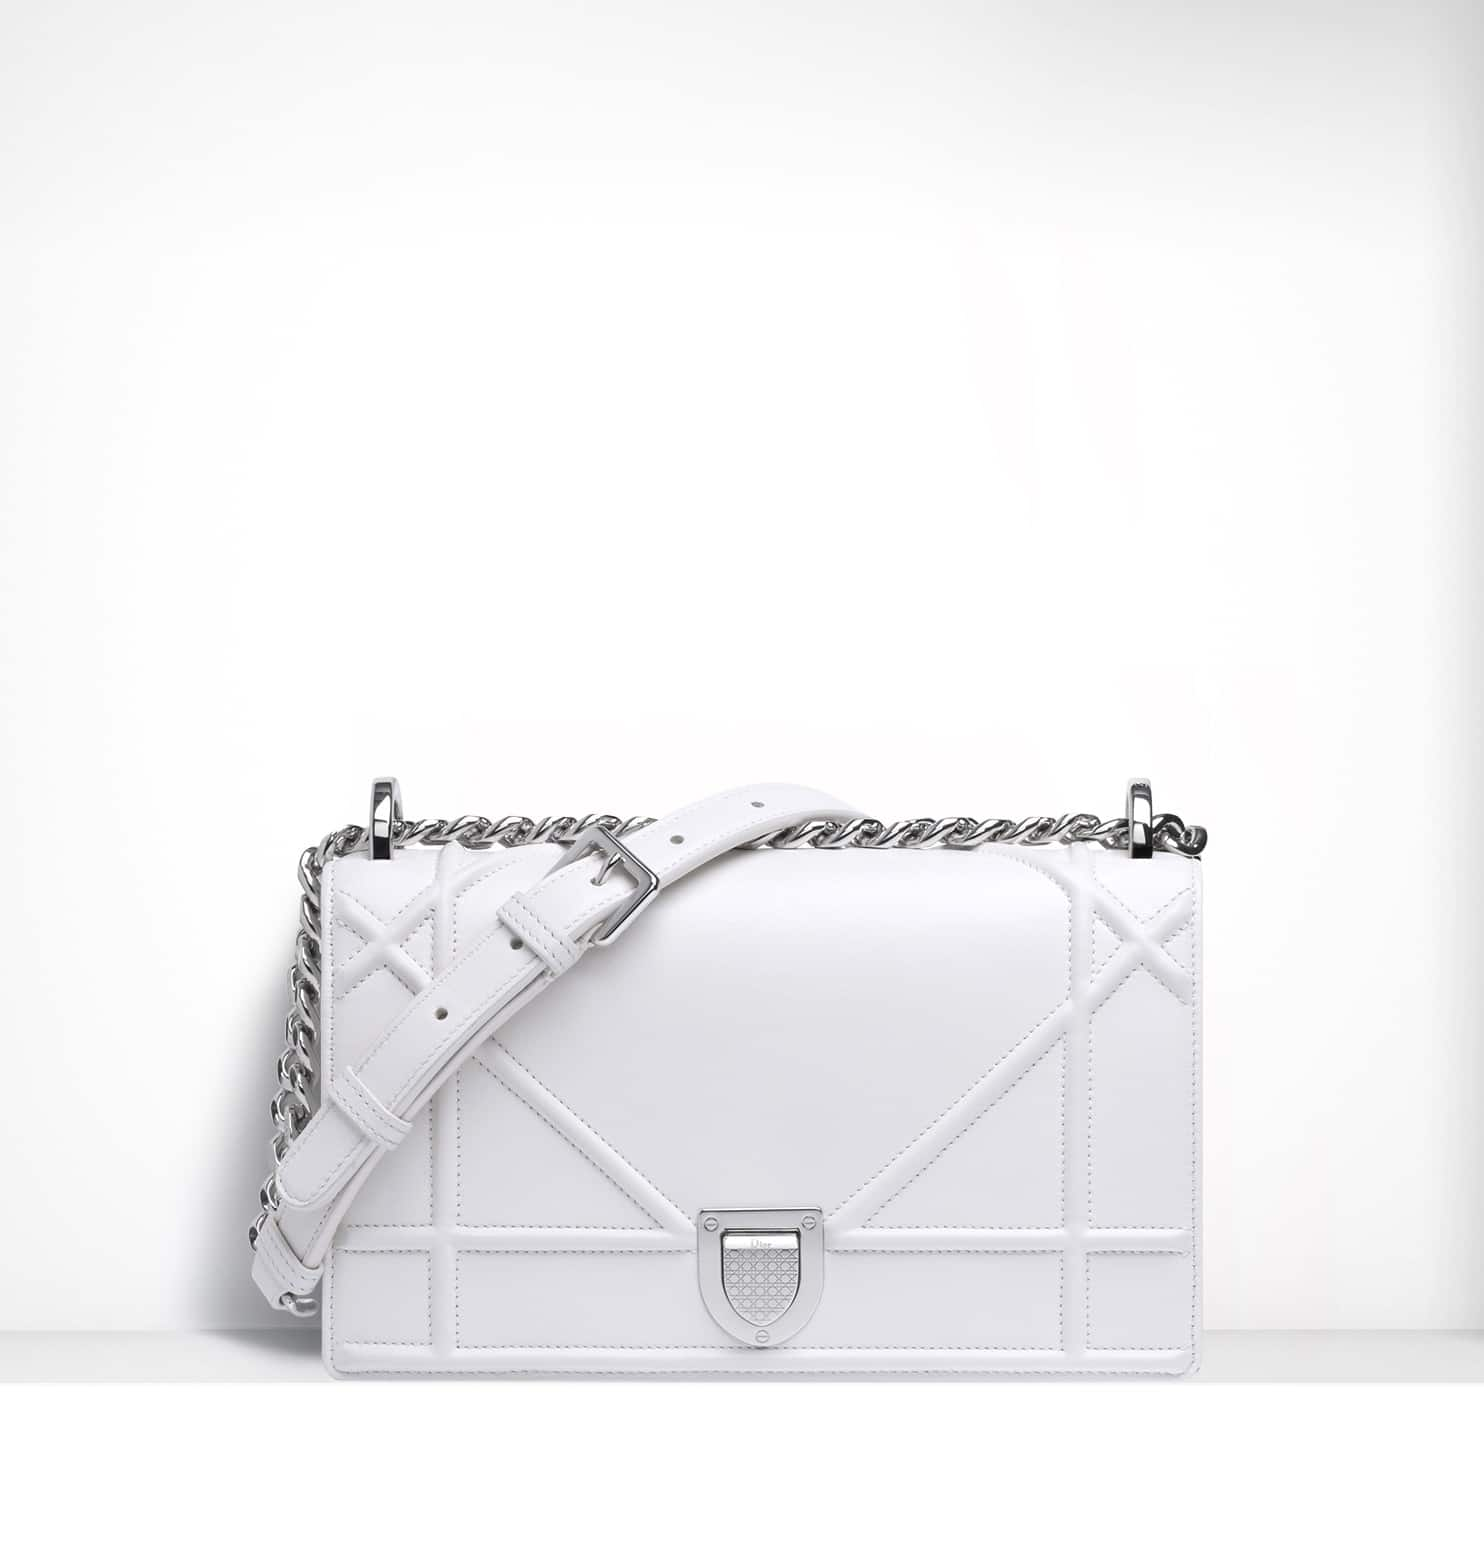 03c3457164d5 Dior Spring Summer 2015 Bag Collection featuring Furistic Details ...